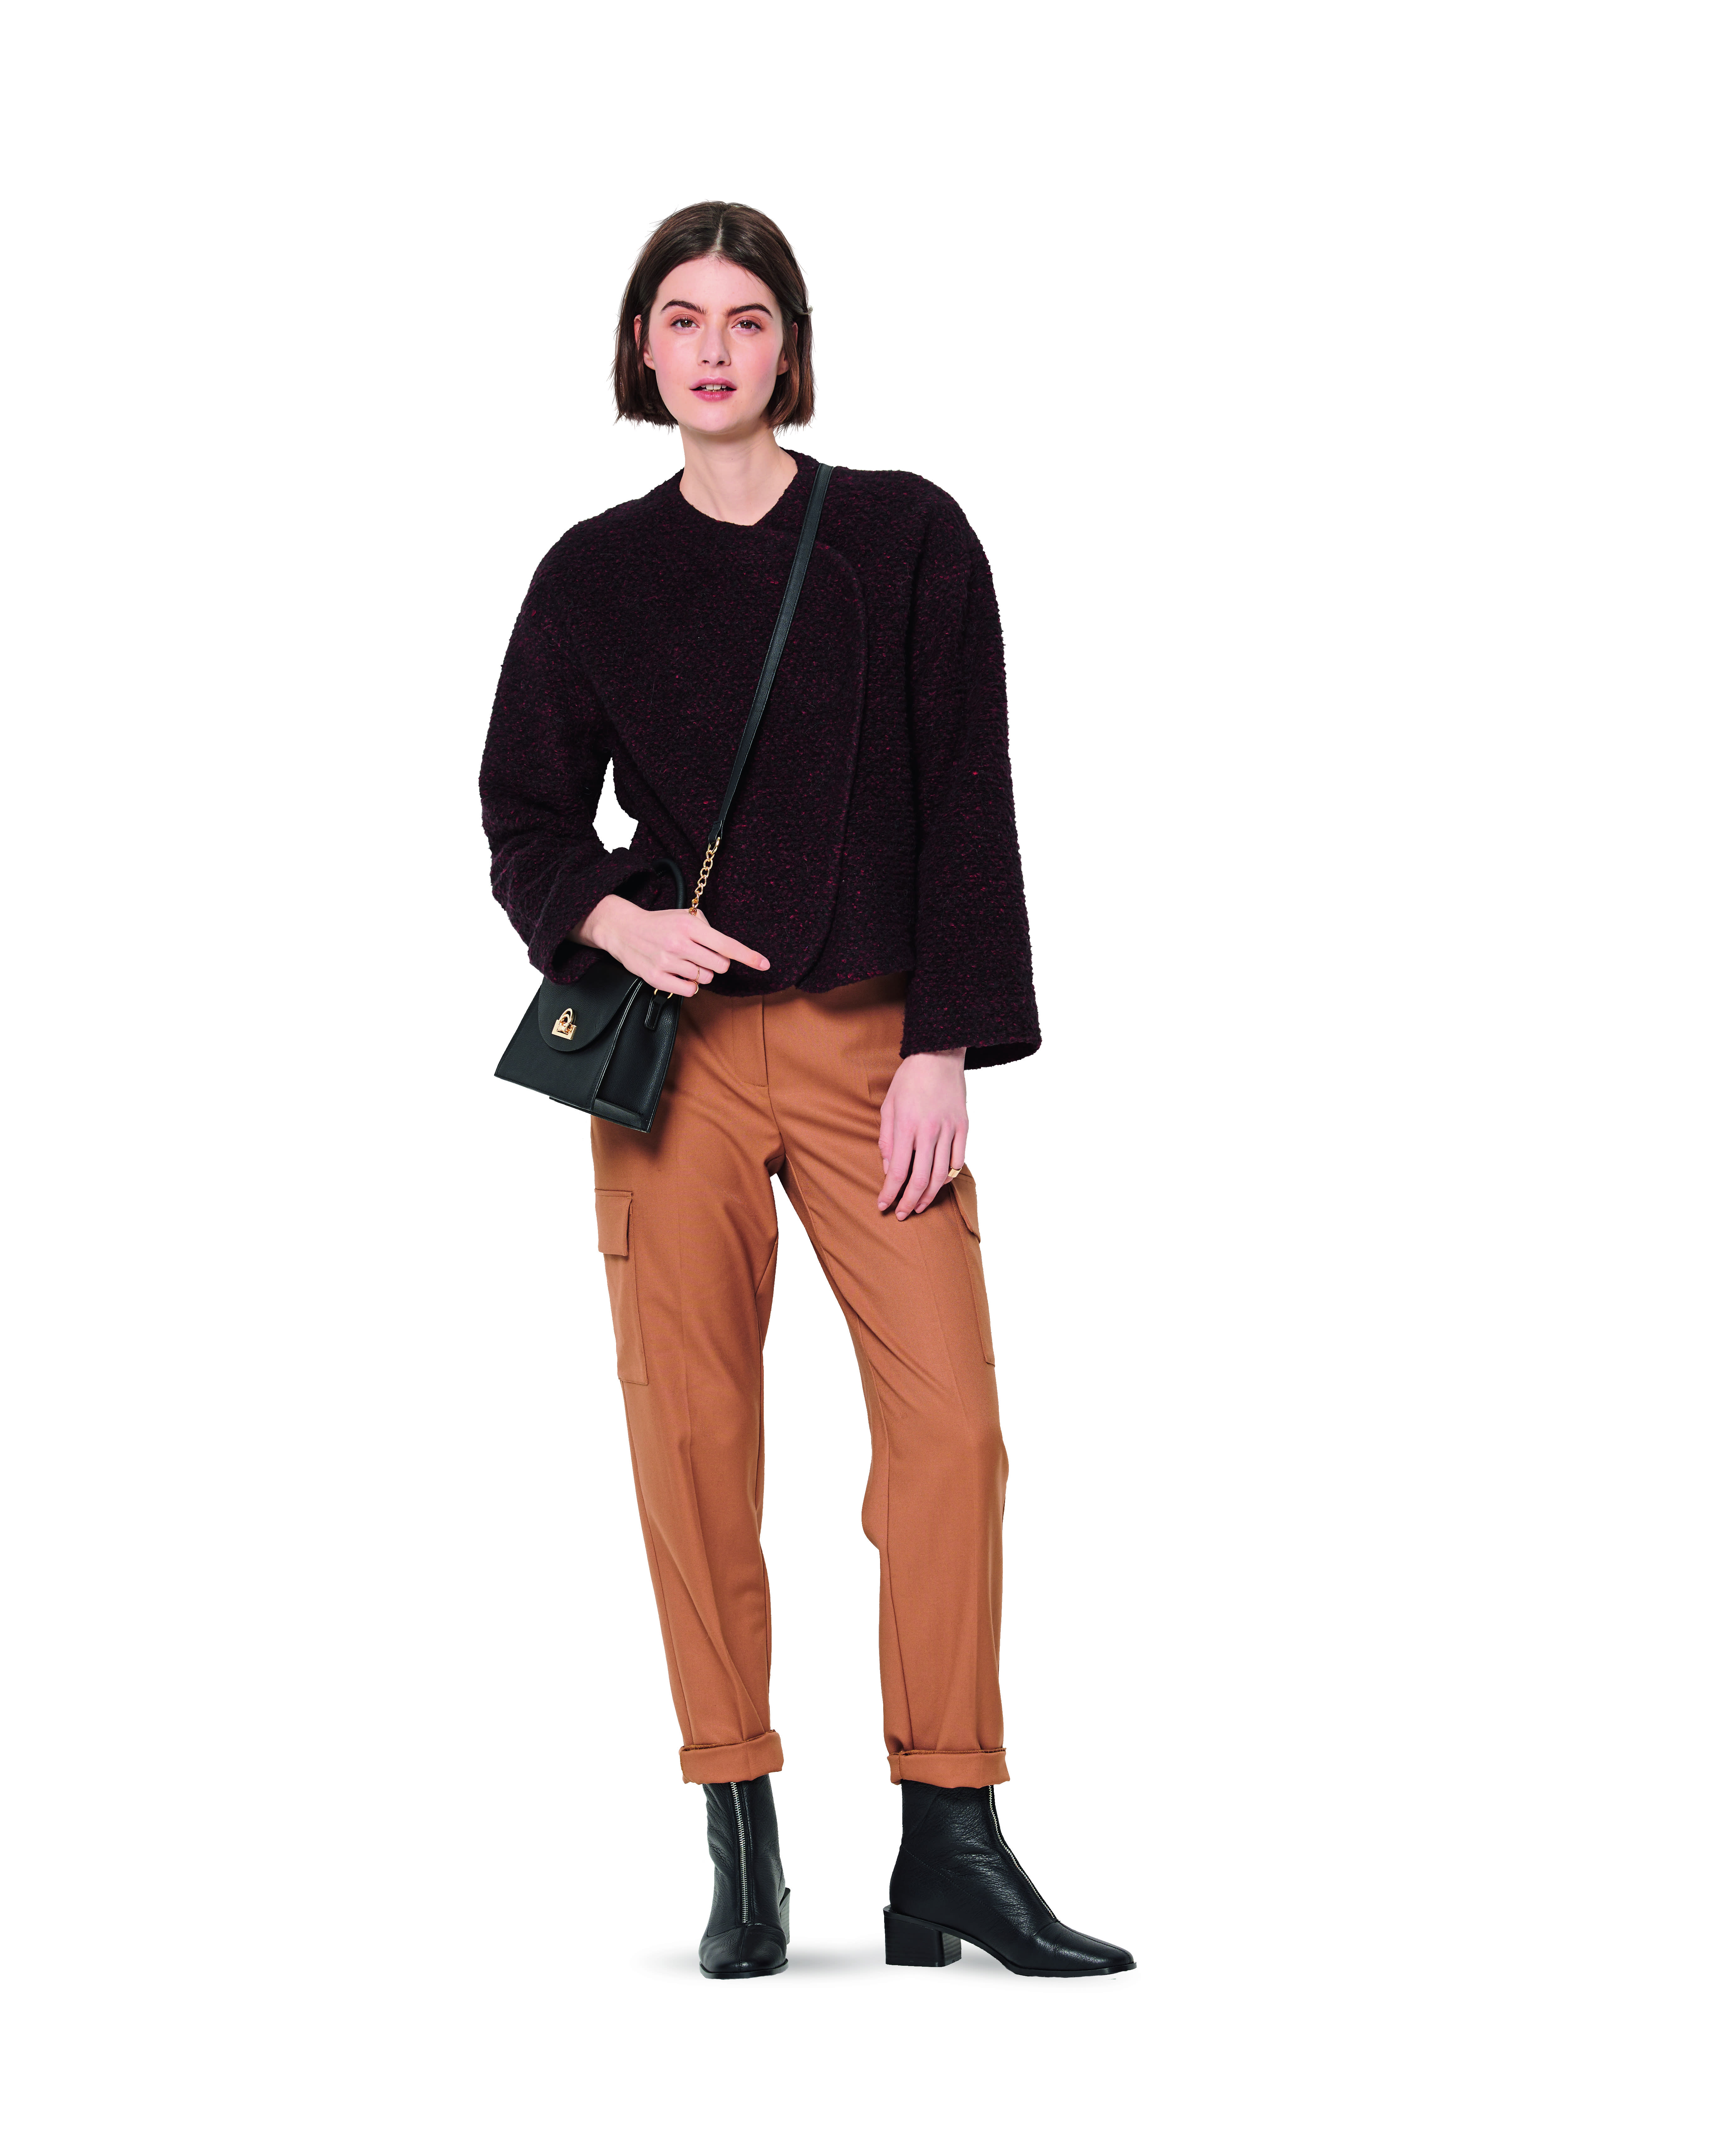 Giacca - Cropped - Chiusura laterale - 6185